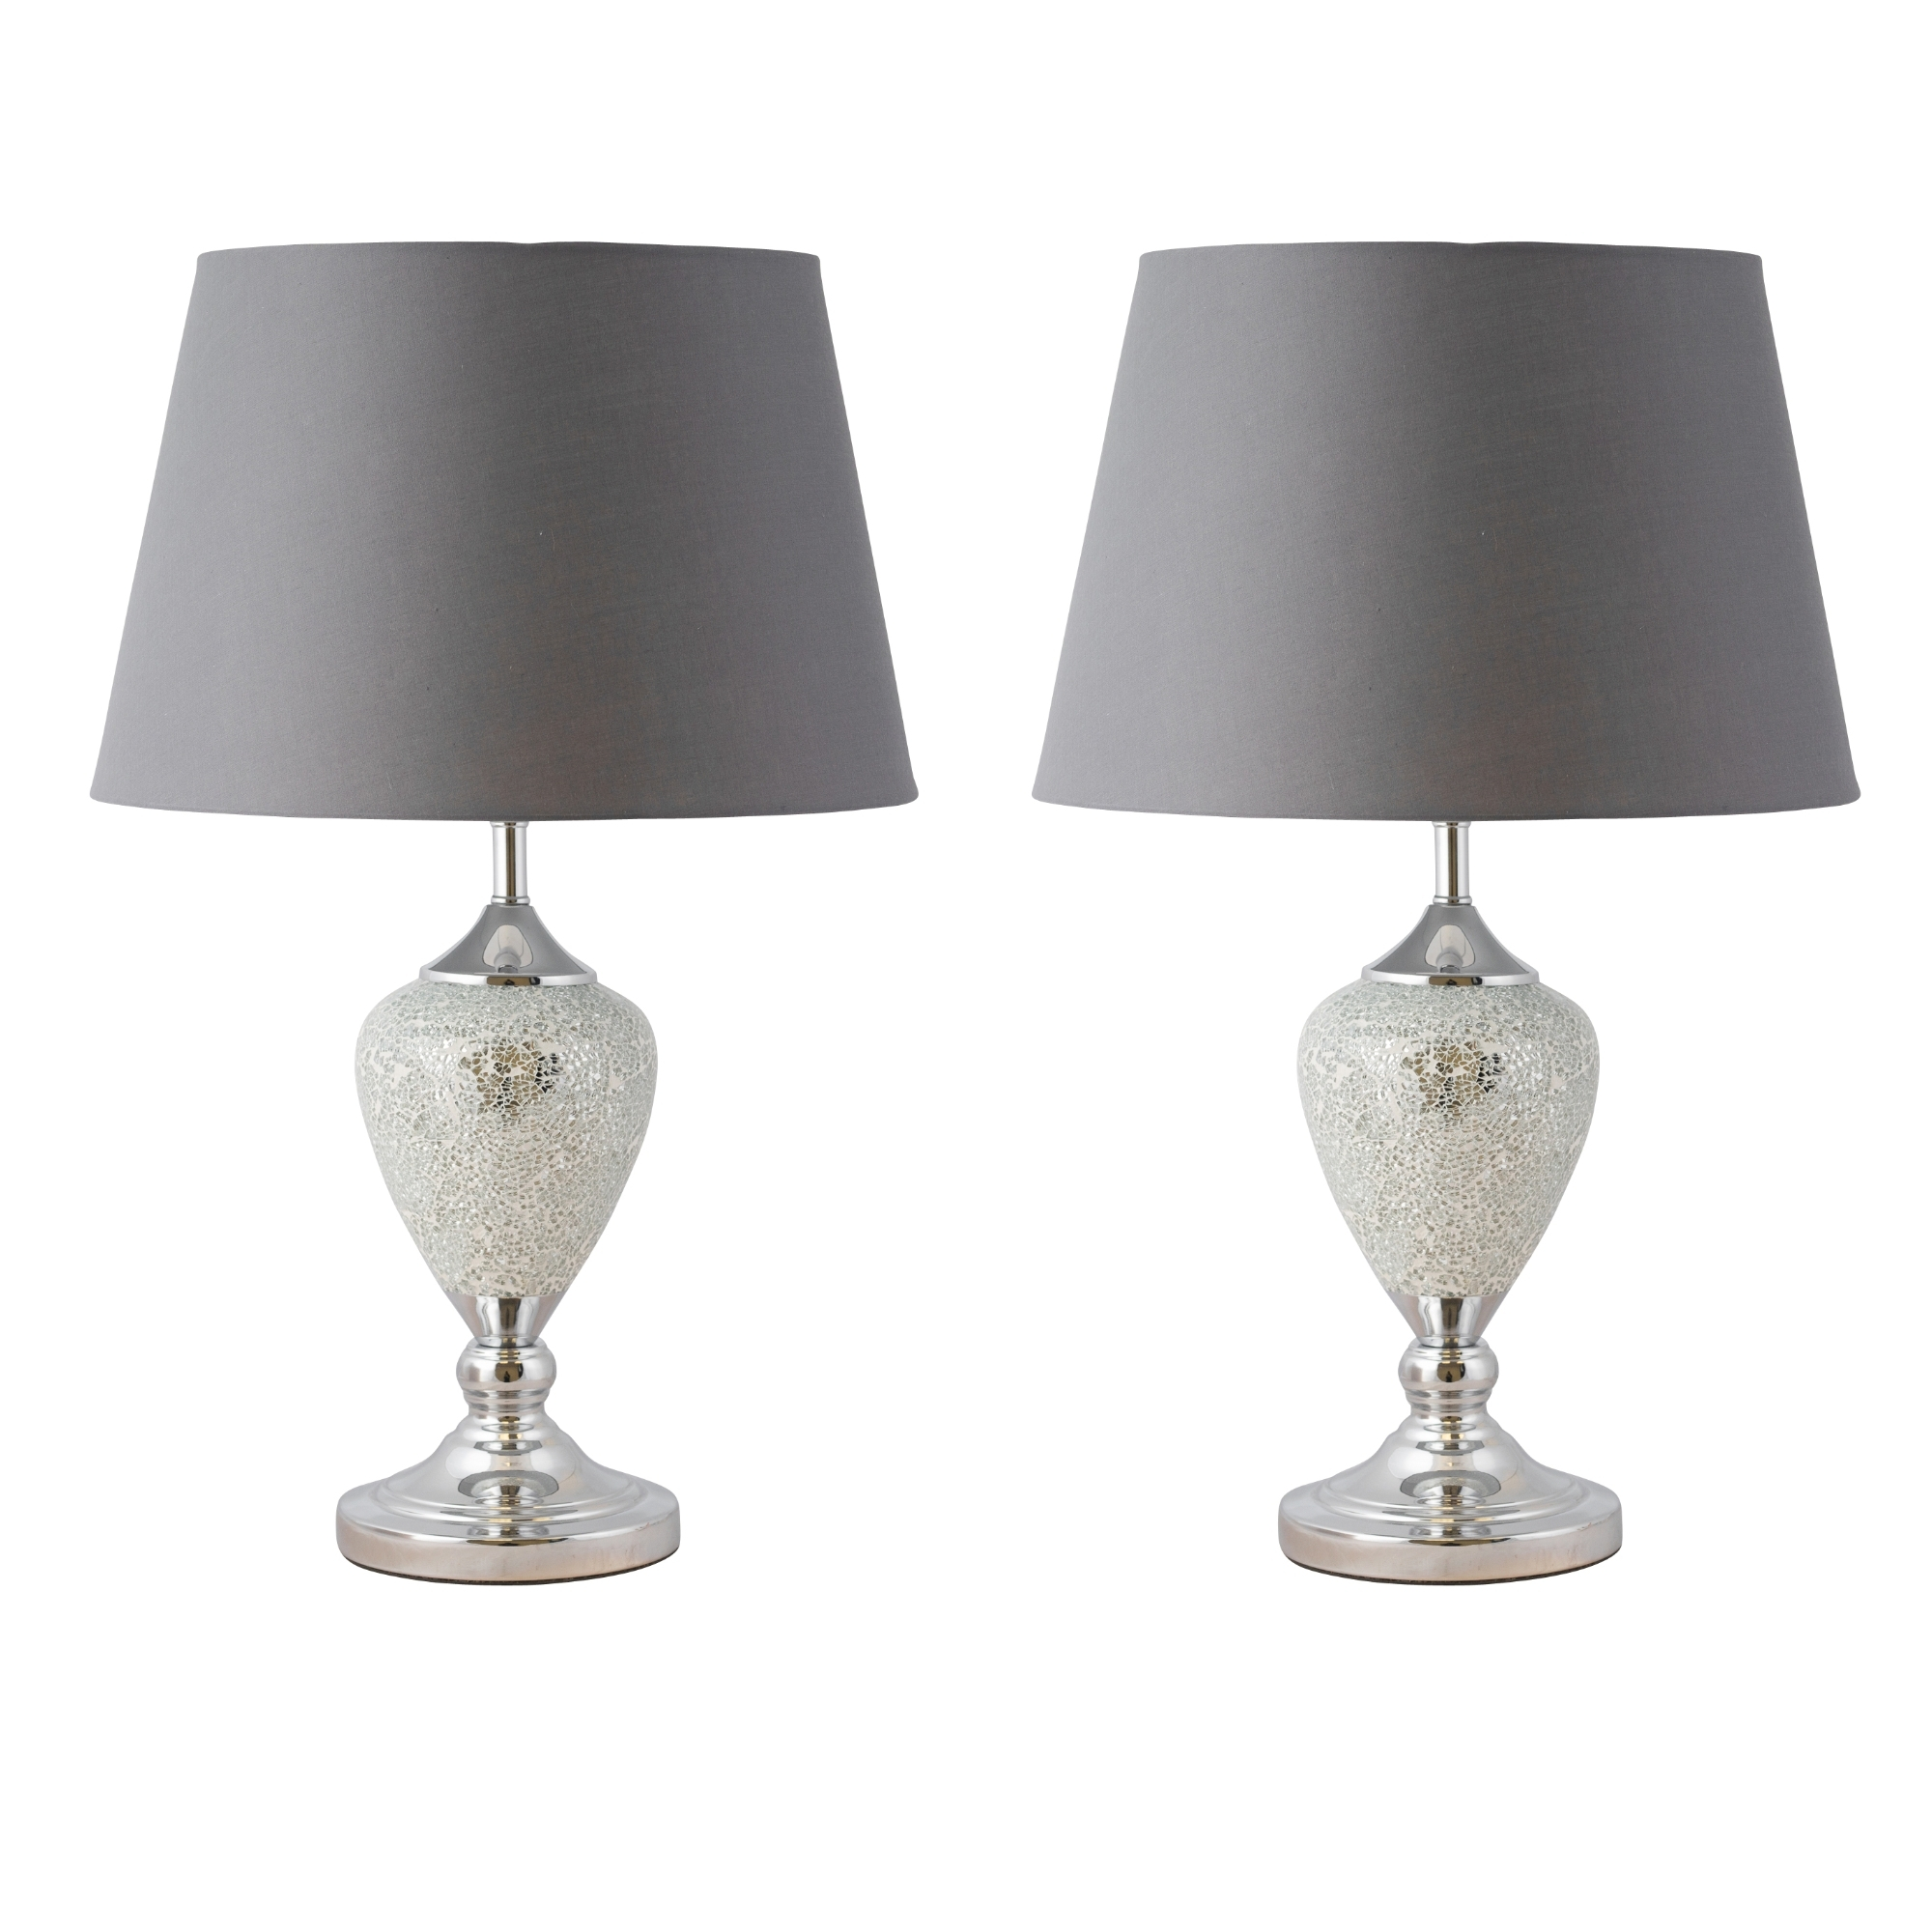 Pair Of Large Glam 59cm Chrome Mirrored Crackle Glass Grey Shade